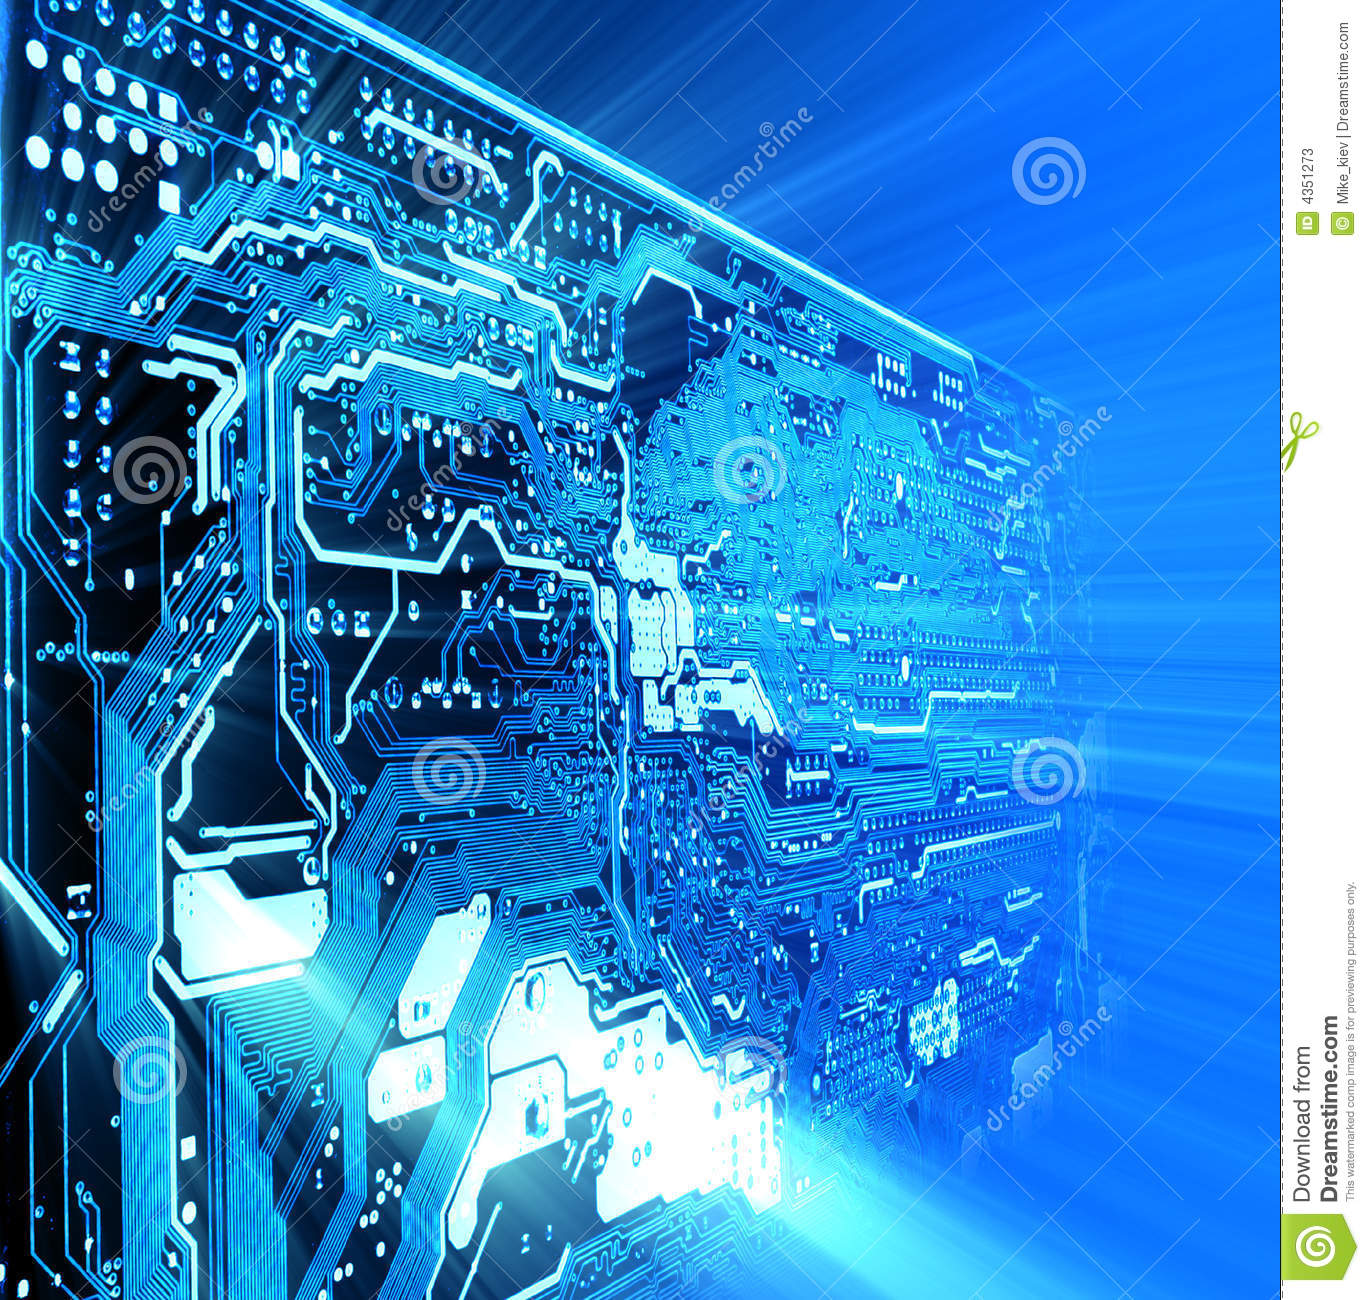 Technology Management Image: High Technology Background Stock Photos